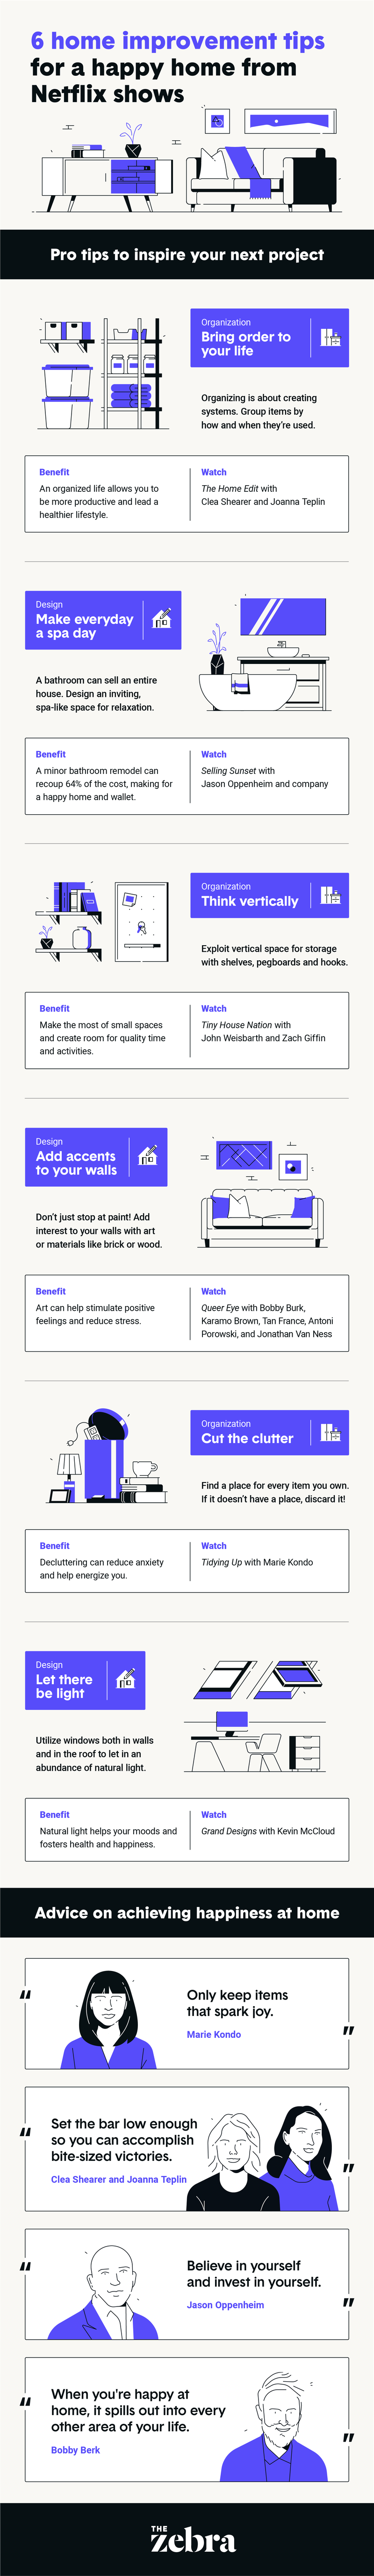 home-improvement-tips-from-netflix-shows